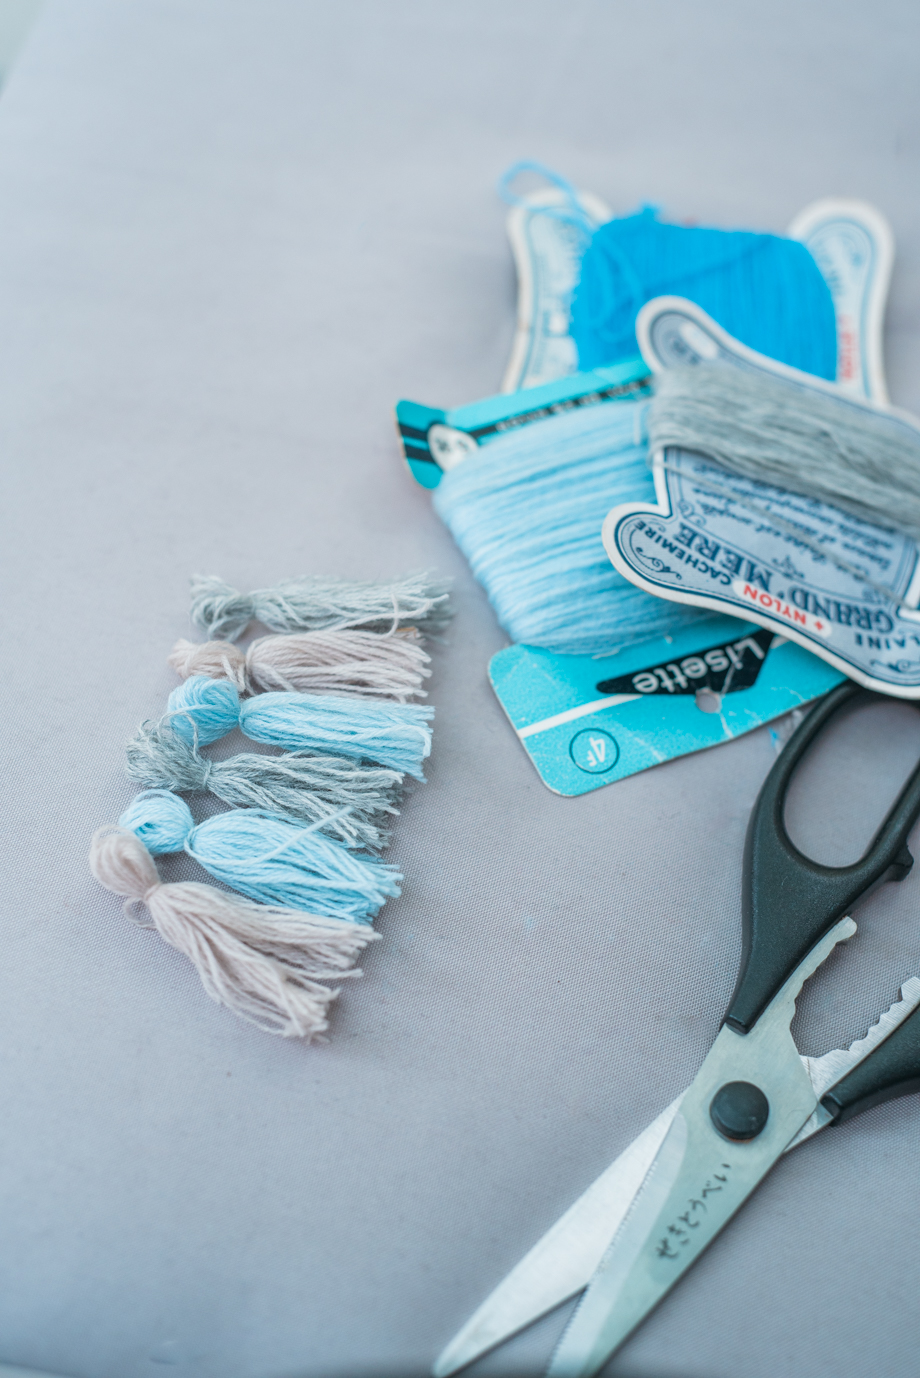 DIY-Make-your-own-tassels-lifestyleblog-anaisstoelen-9.jpg